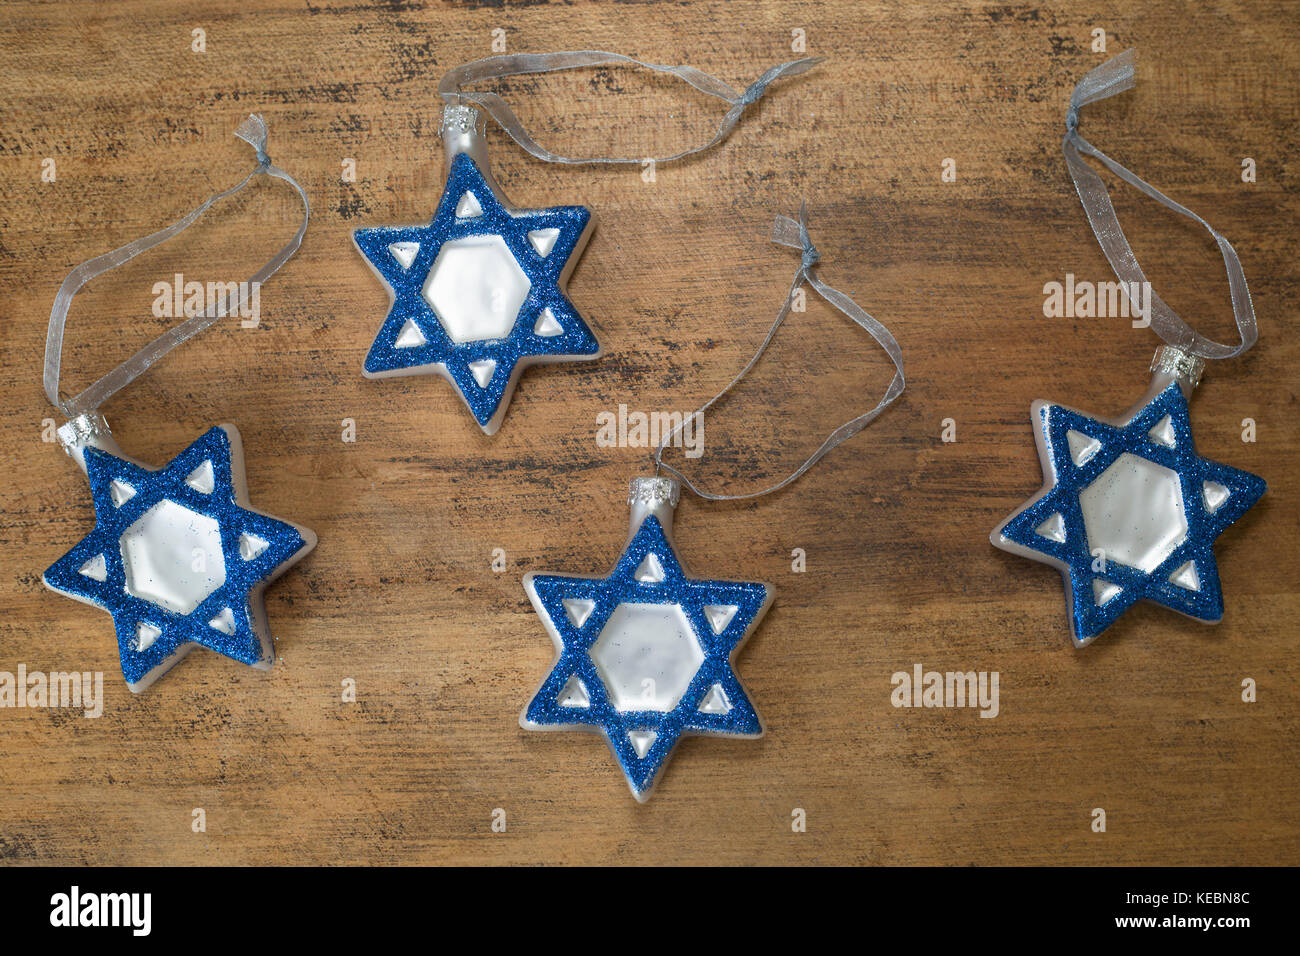 Hanukkah decorations - Stock Image